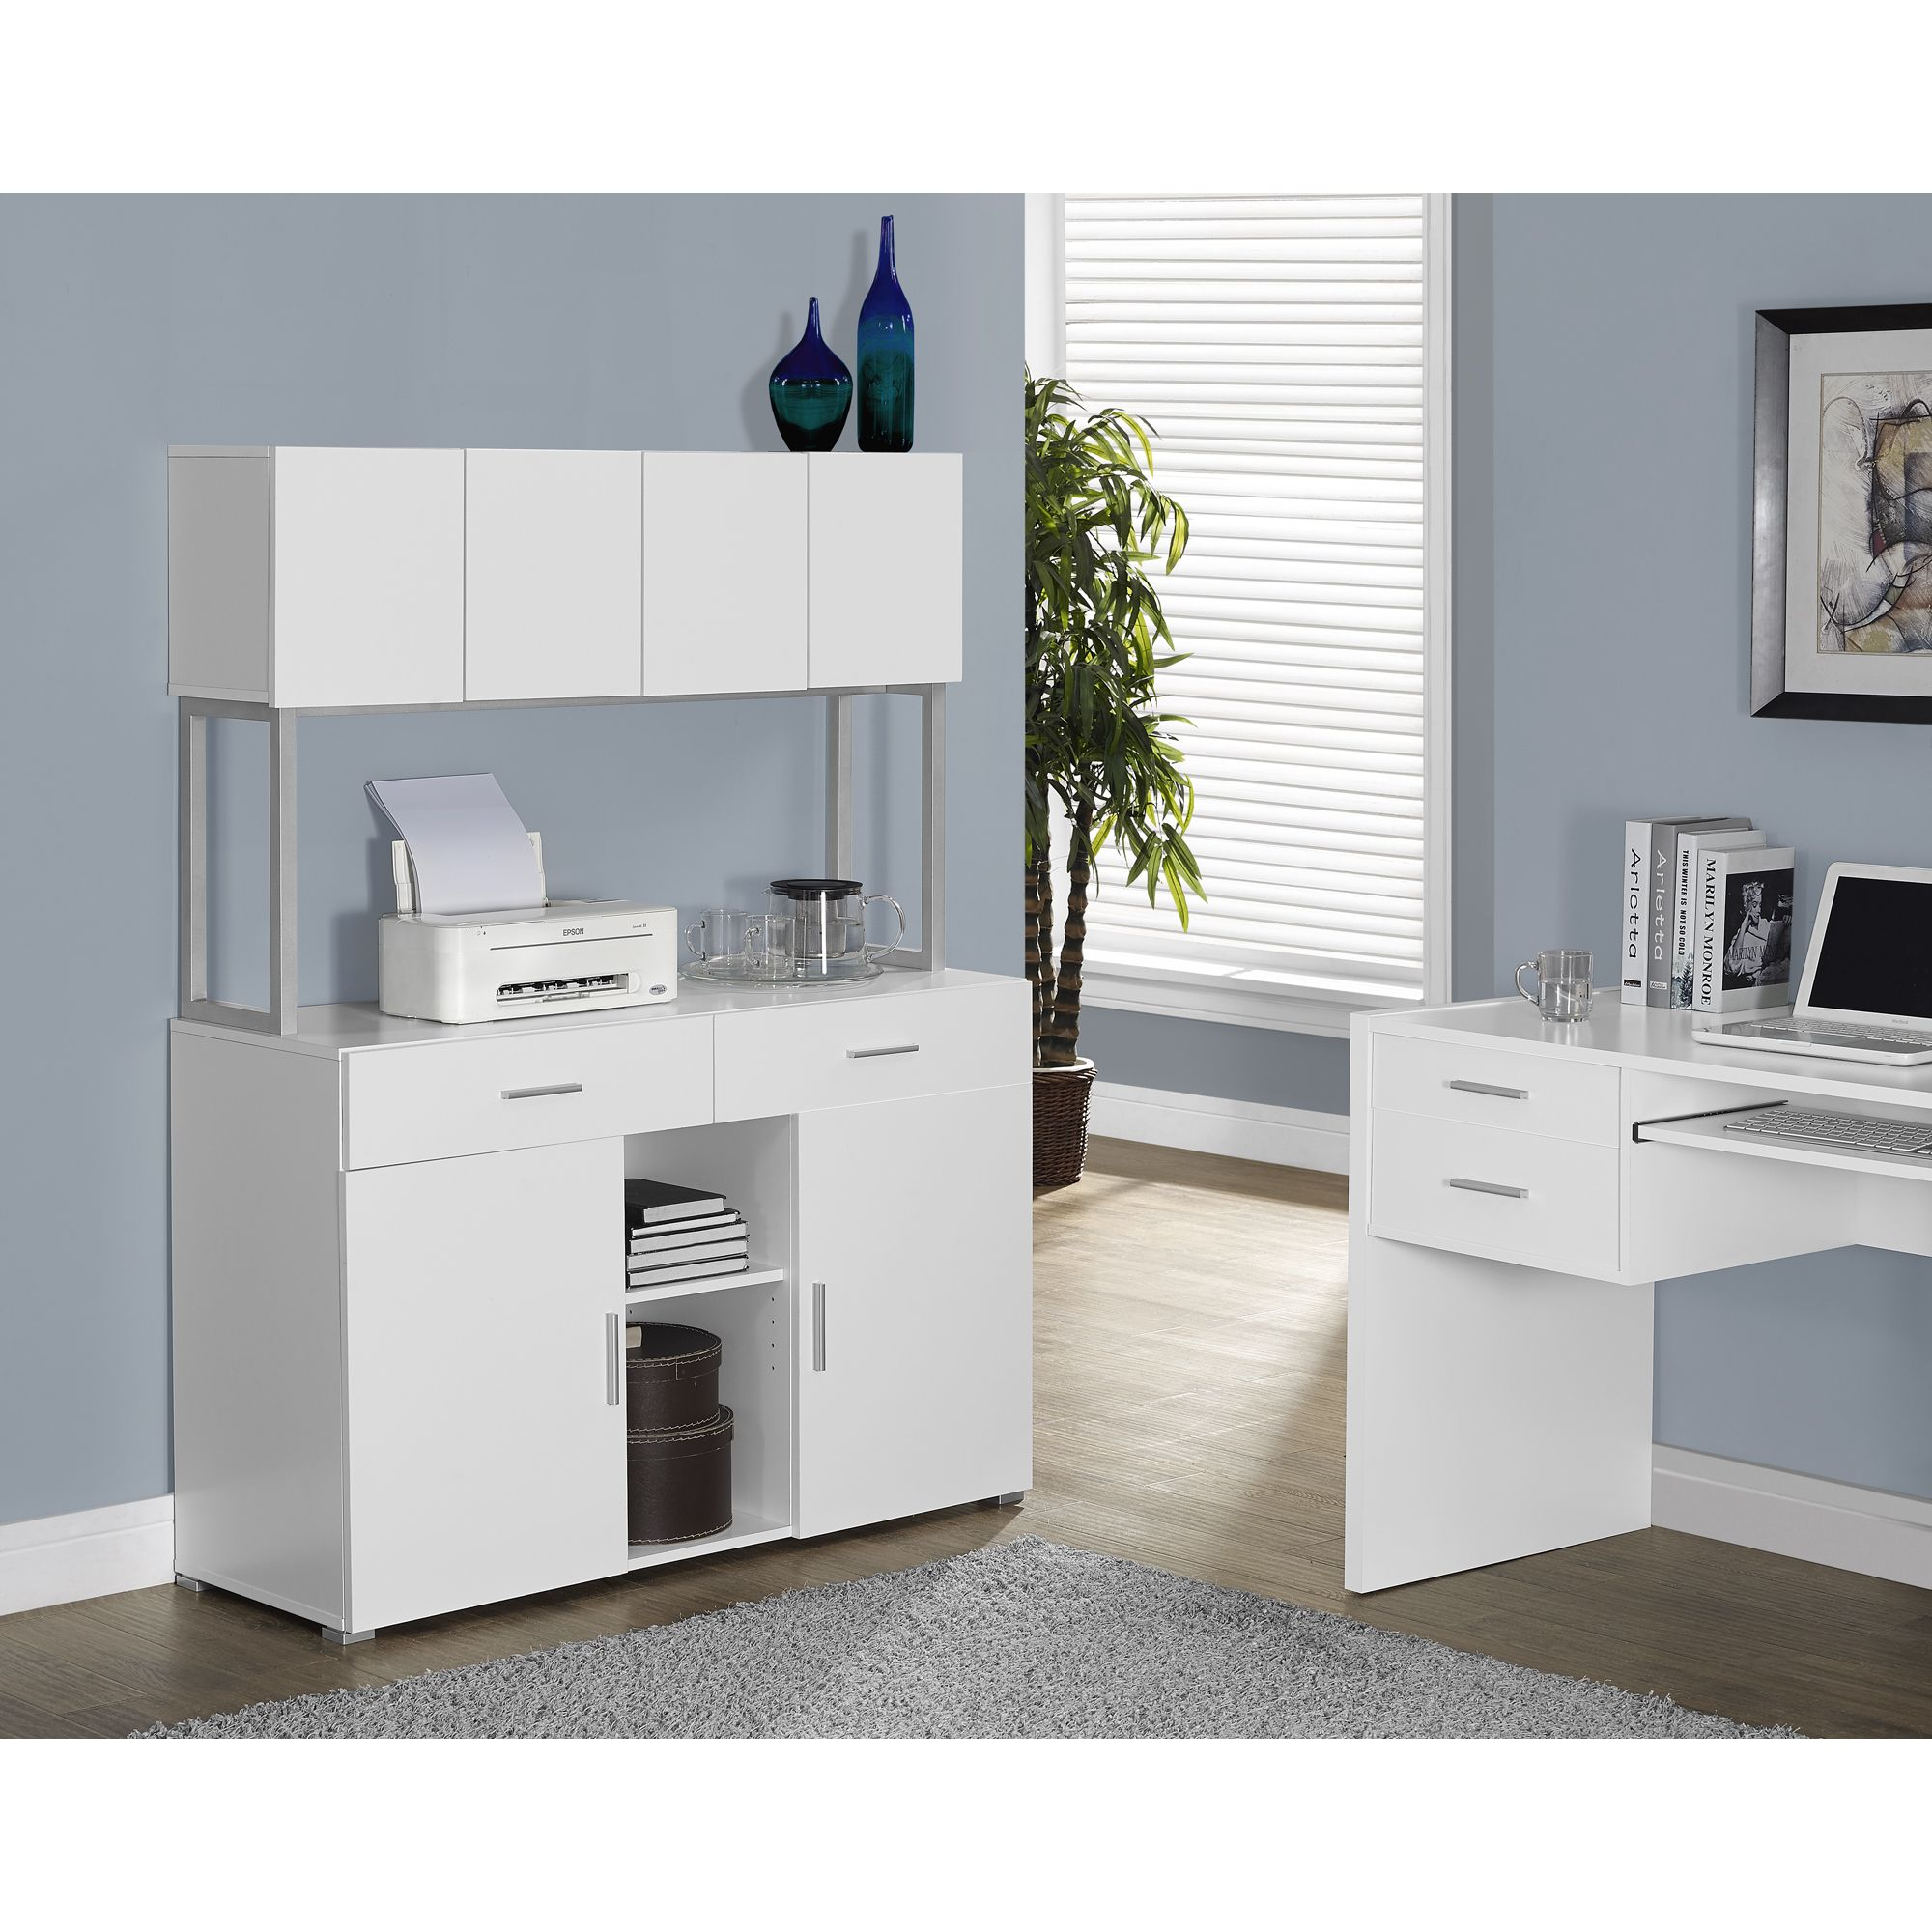 cool handy office supplies. Organize Office Supplies And Implements In This Handy Storage Credenza. Piece Features Multiple Compartments Cool